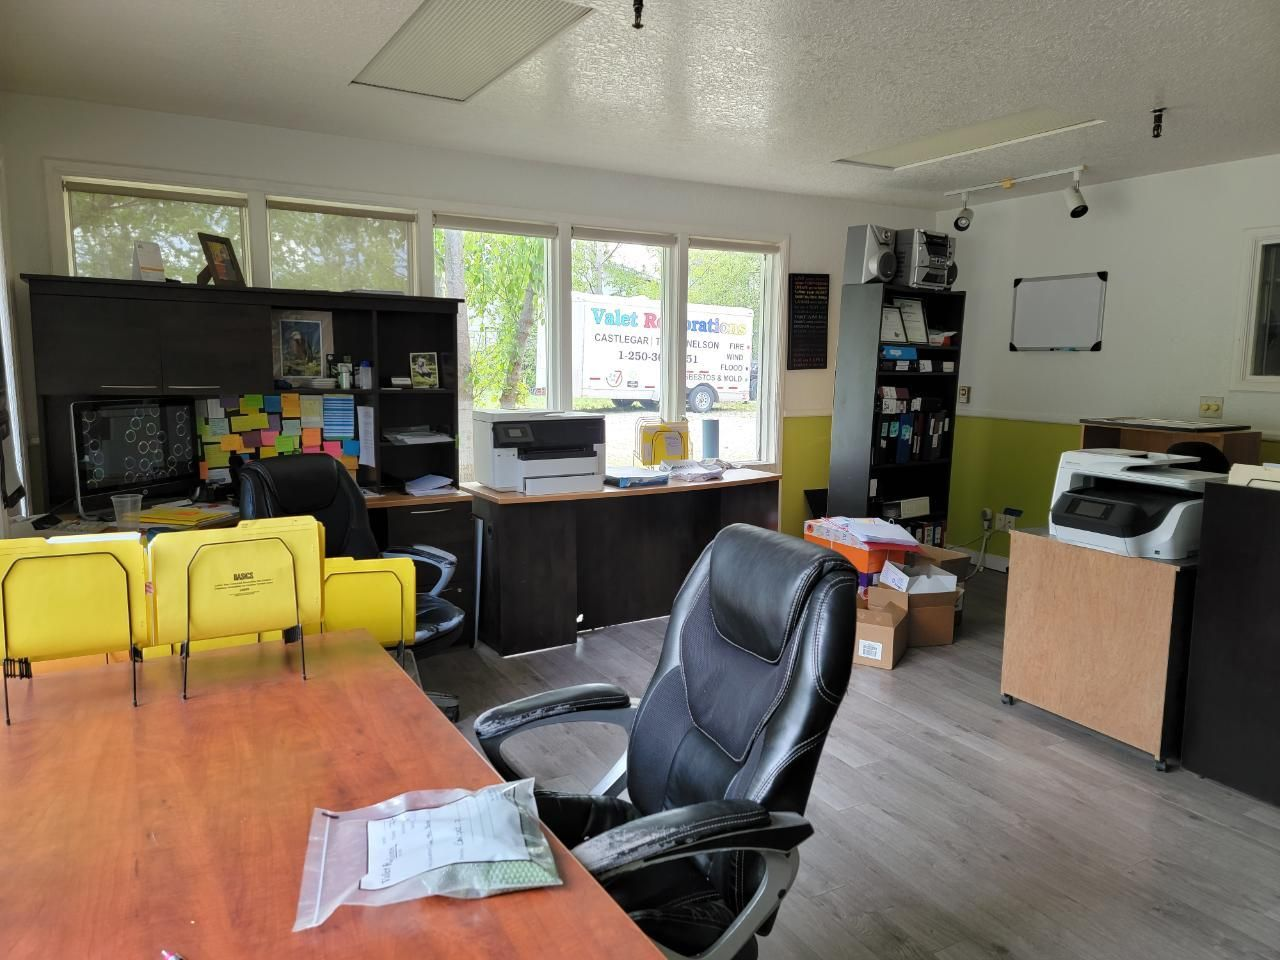 Main Photo: 1840 CO-OP LANE in Robson/Raspberry/Brilliant: Retail for sale : MLS®# 2458864